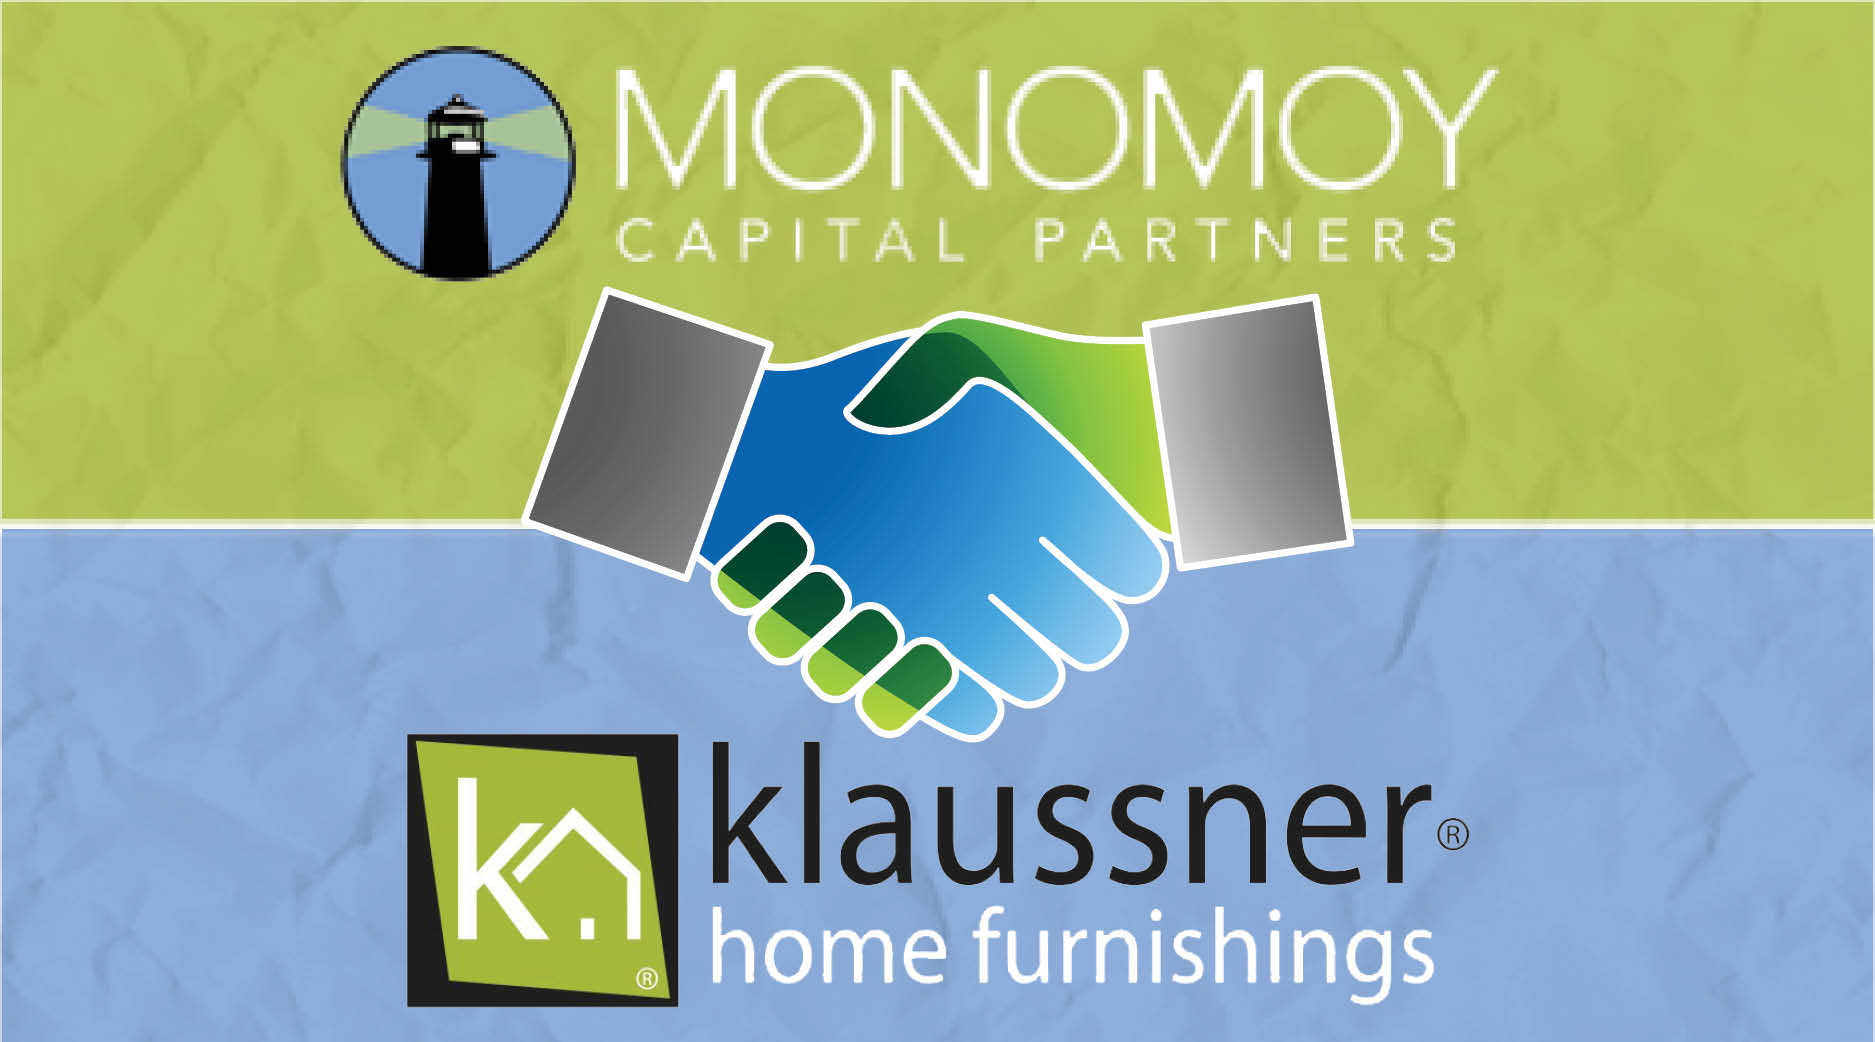 Klaussner Home Furnishings has been acquired by private investment firm, Monomoy Capital Partners.